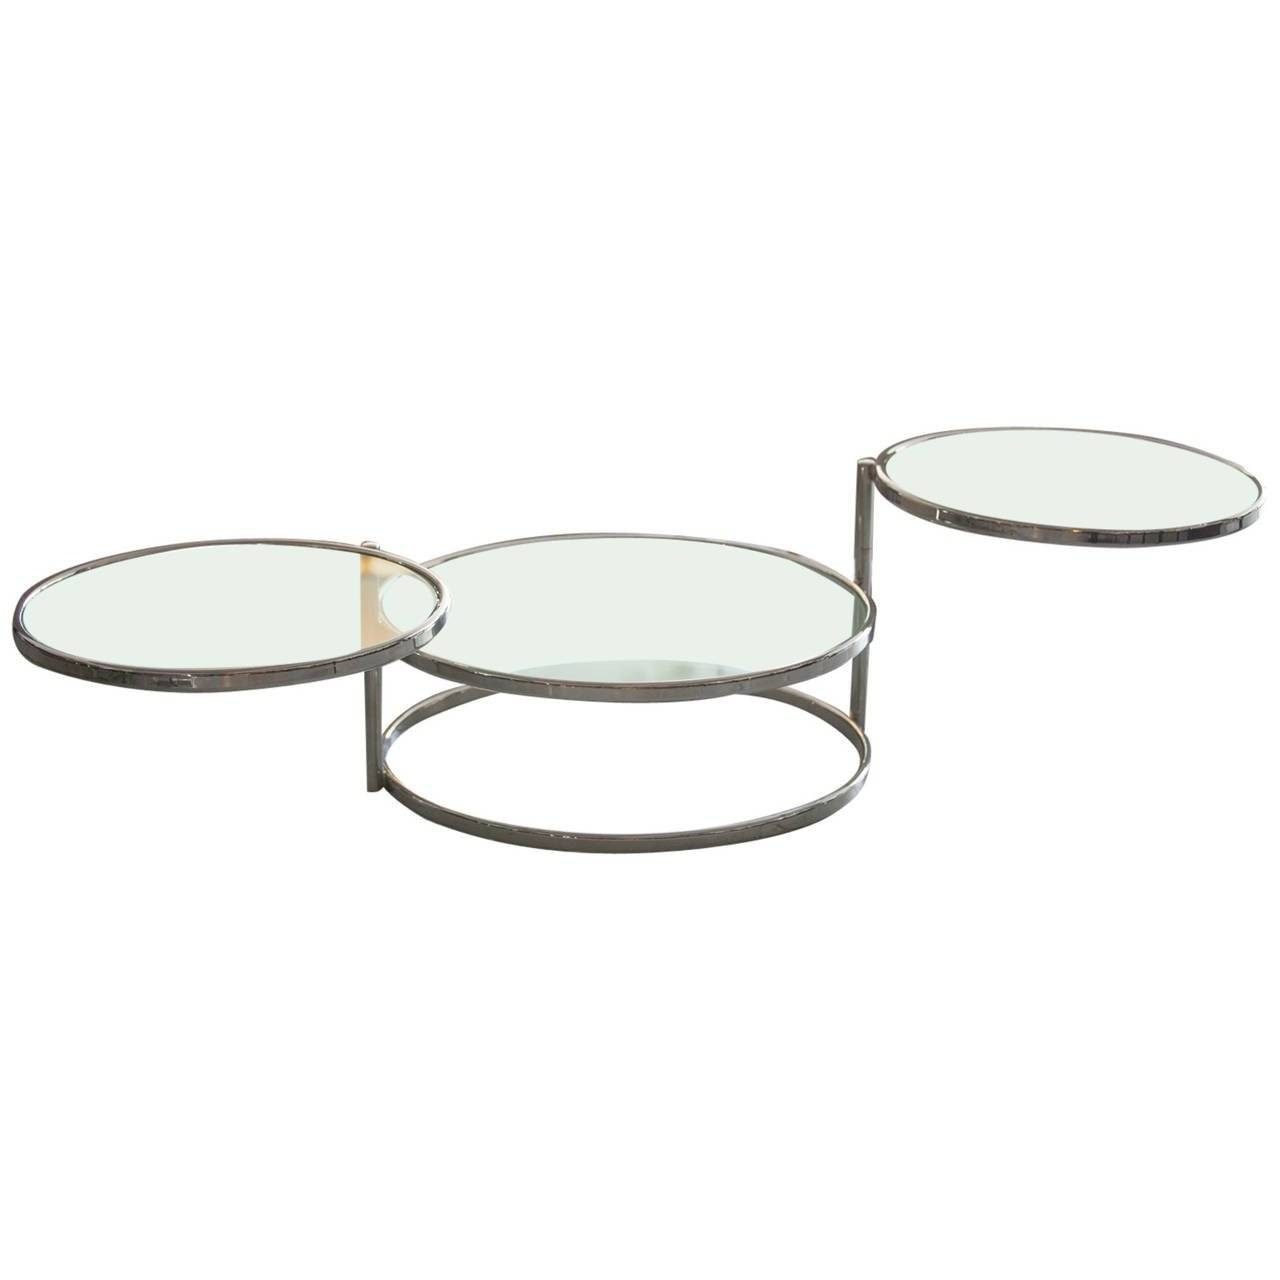 Furniture: Midcentury Side Table | Colored Coffee Tables | Swivel within Round Swivel Coffee Tables (Image 12 of 30)